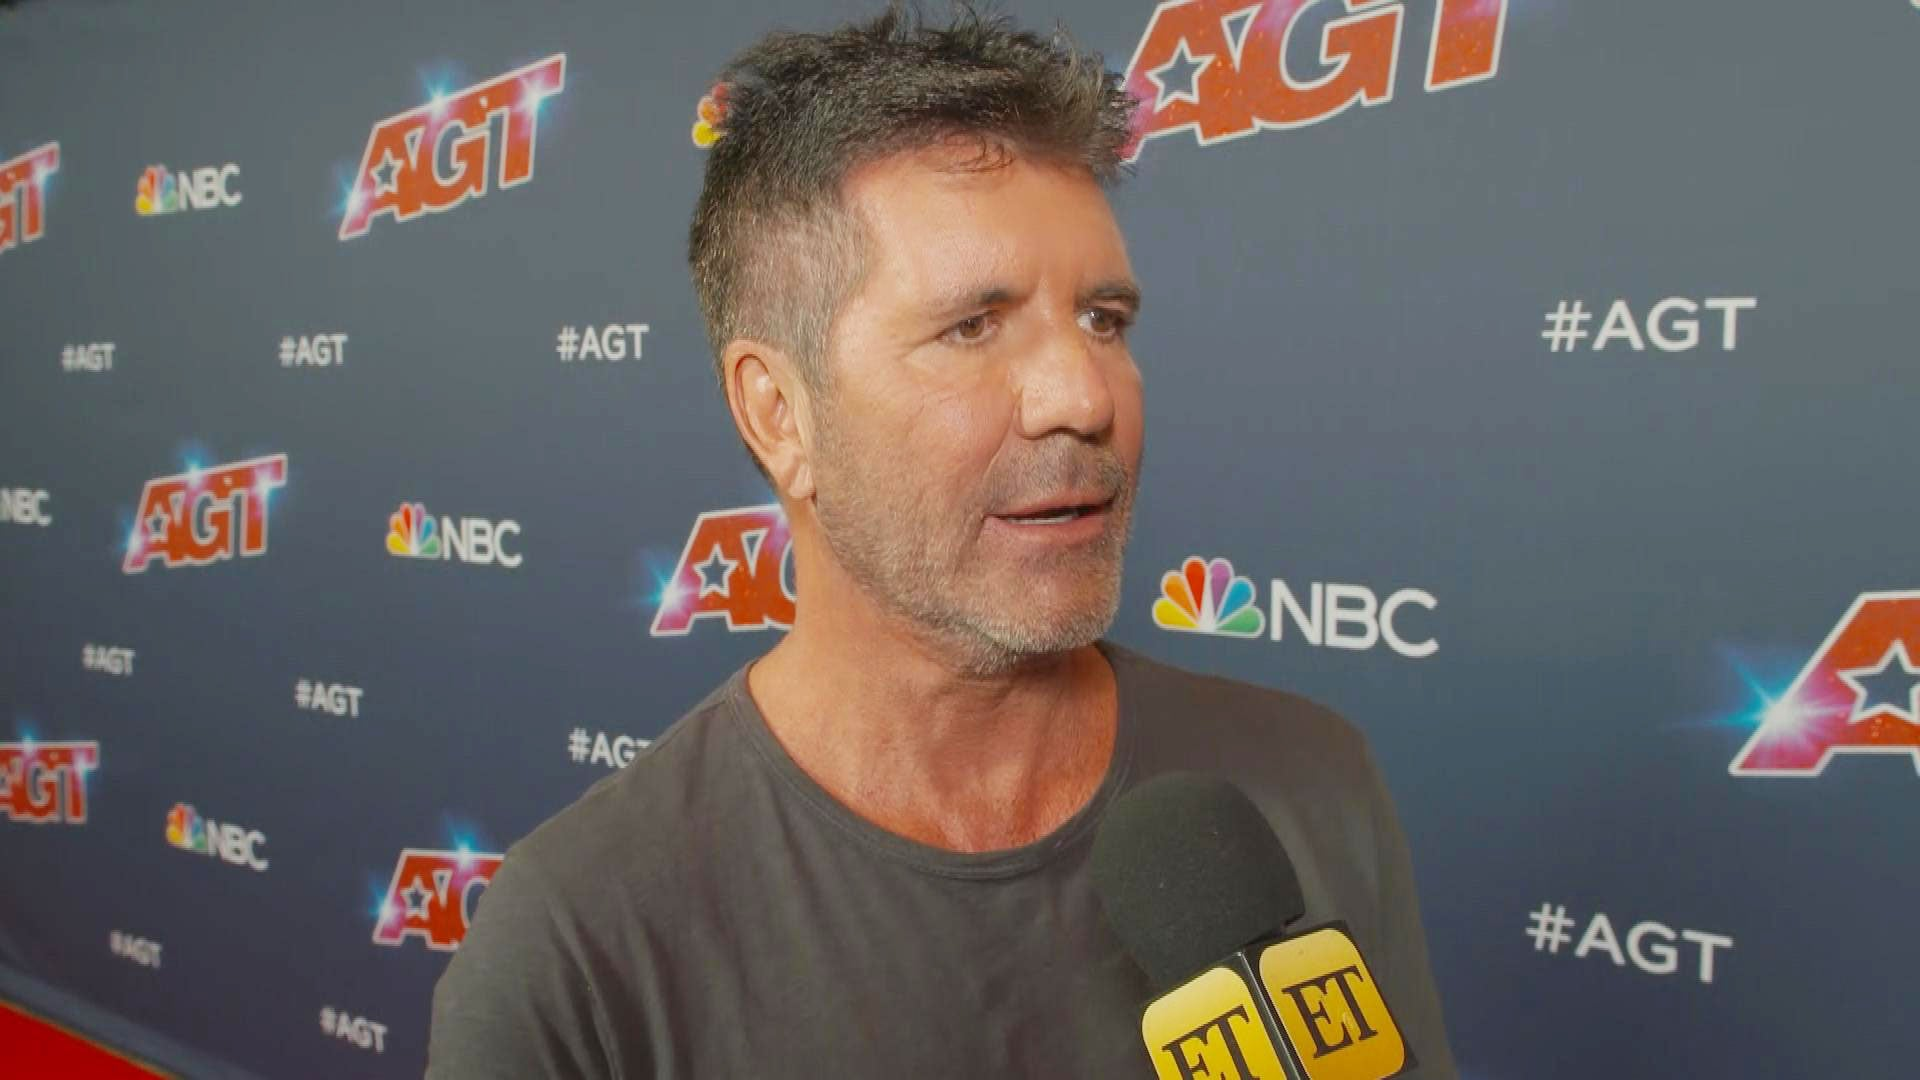 'America's Got Talent' Judge Simon Cowell Reveals Why He Decided to Get In Shape During Season 14 (Exclusive)